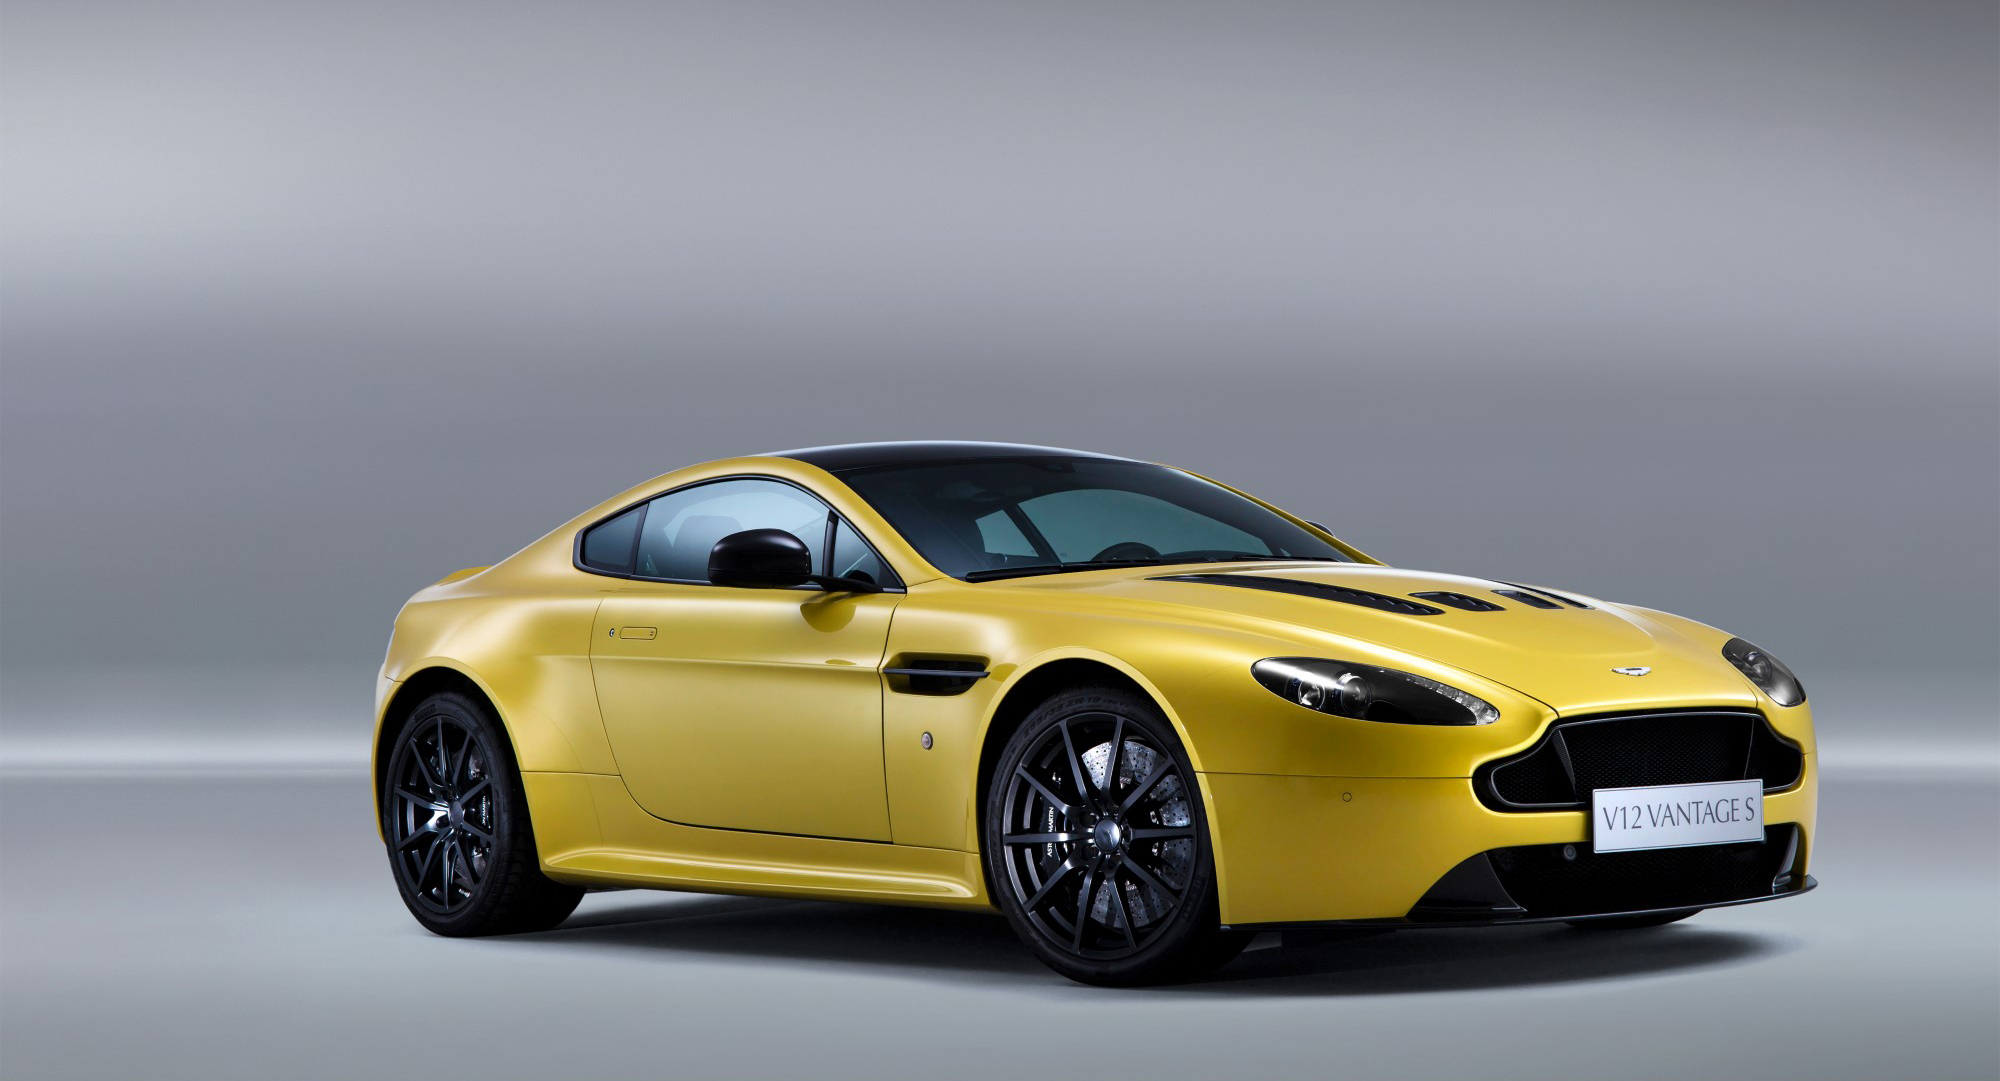 9 Aston Martin Vantage Review, Ratings, Specs, Prices ... | aston martin vantage price 2014